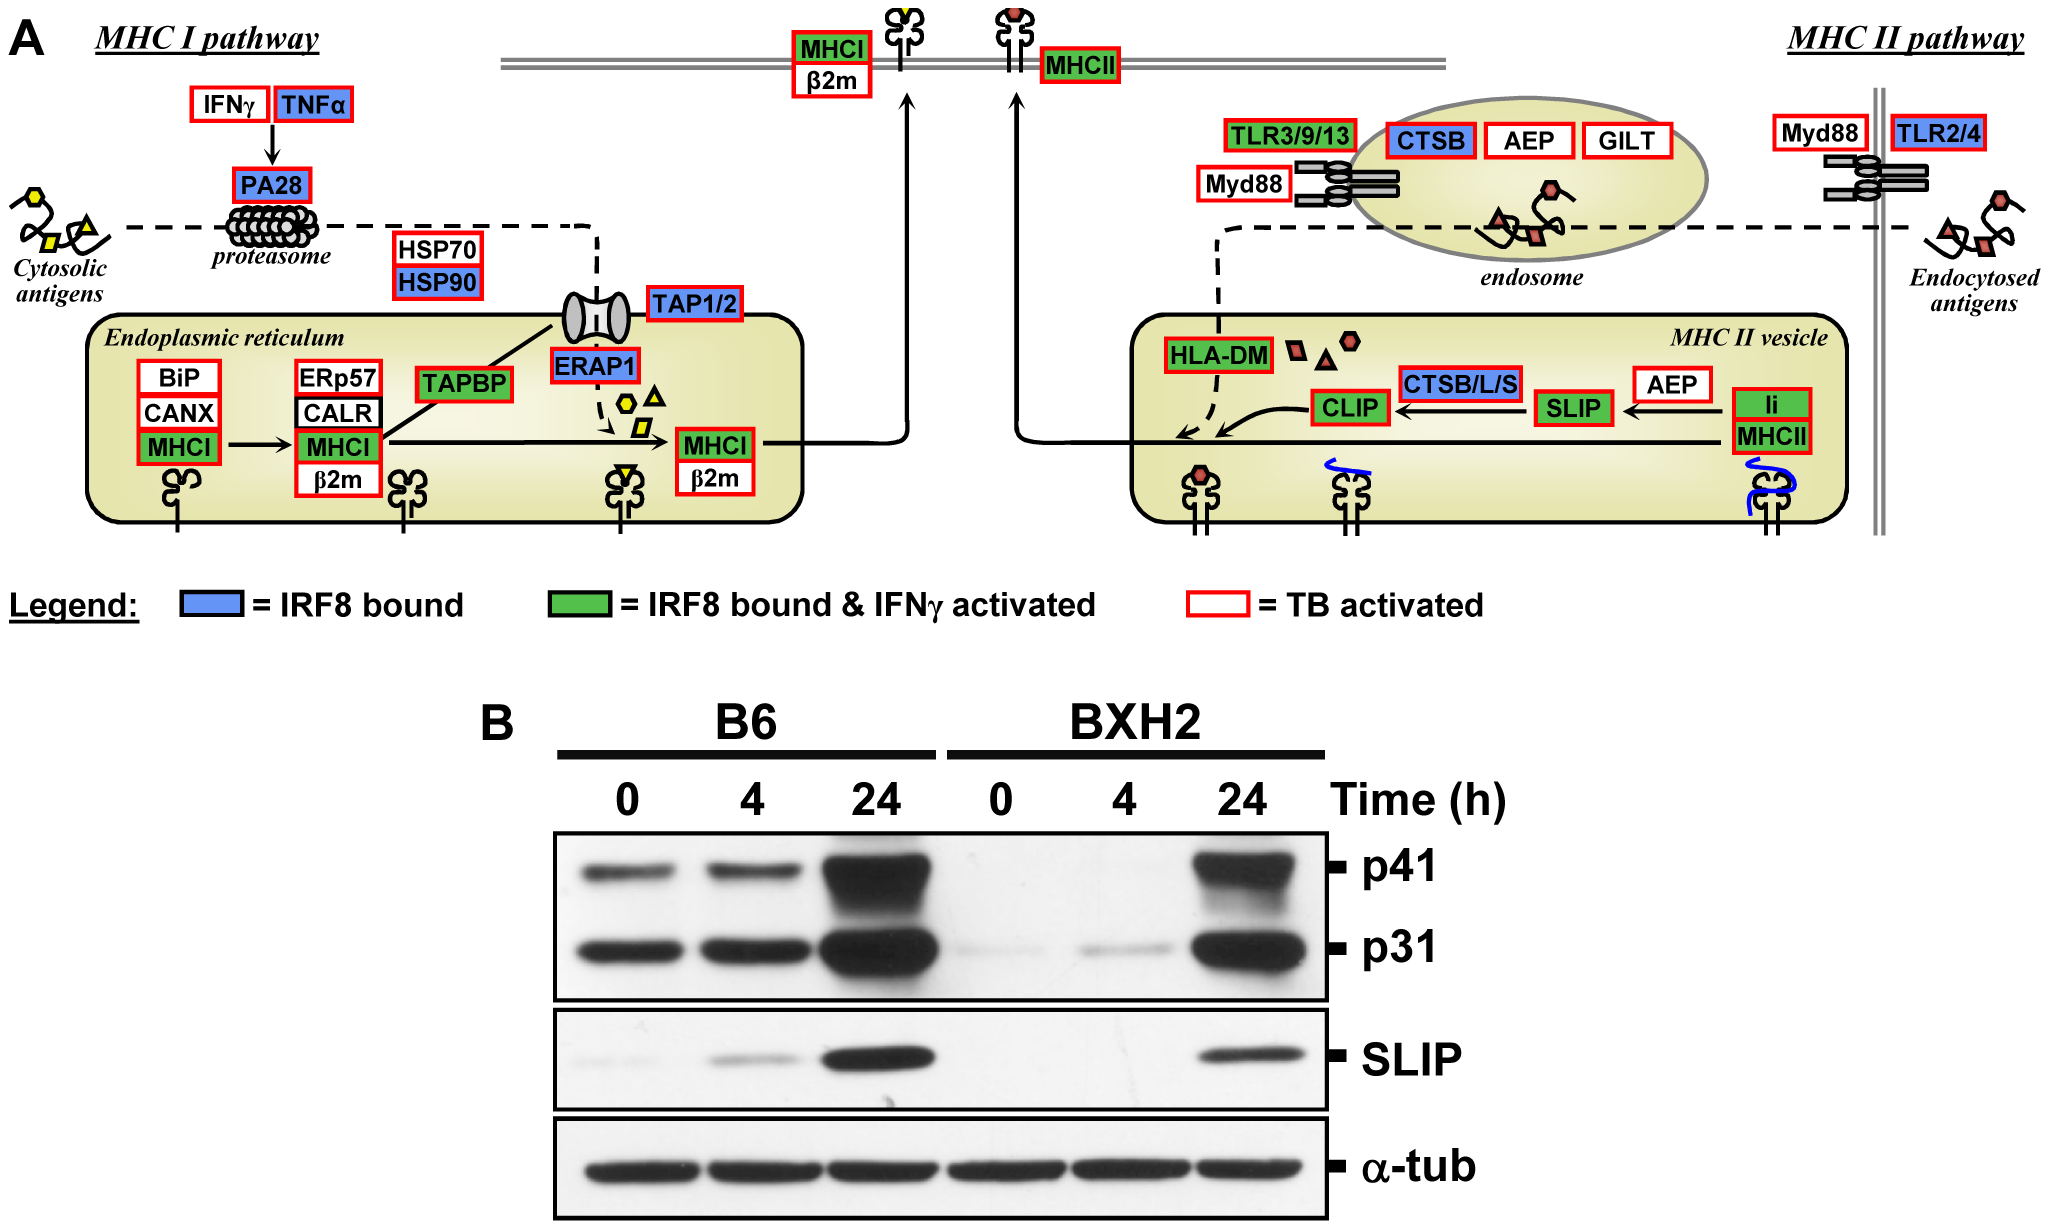 The IRF8 binding sites are strongly associated with antigen presenting cells function.